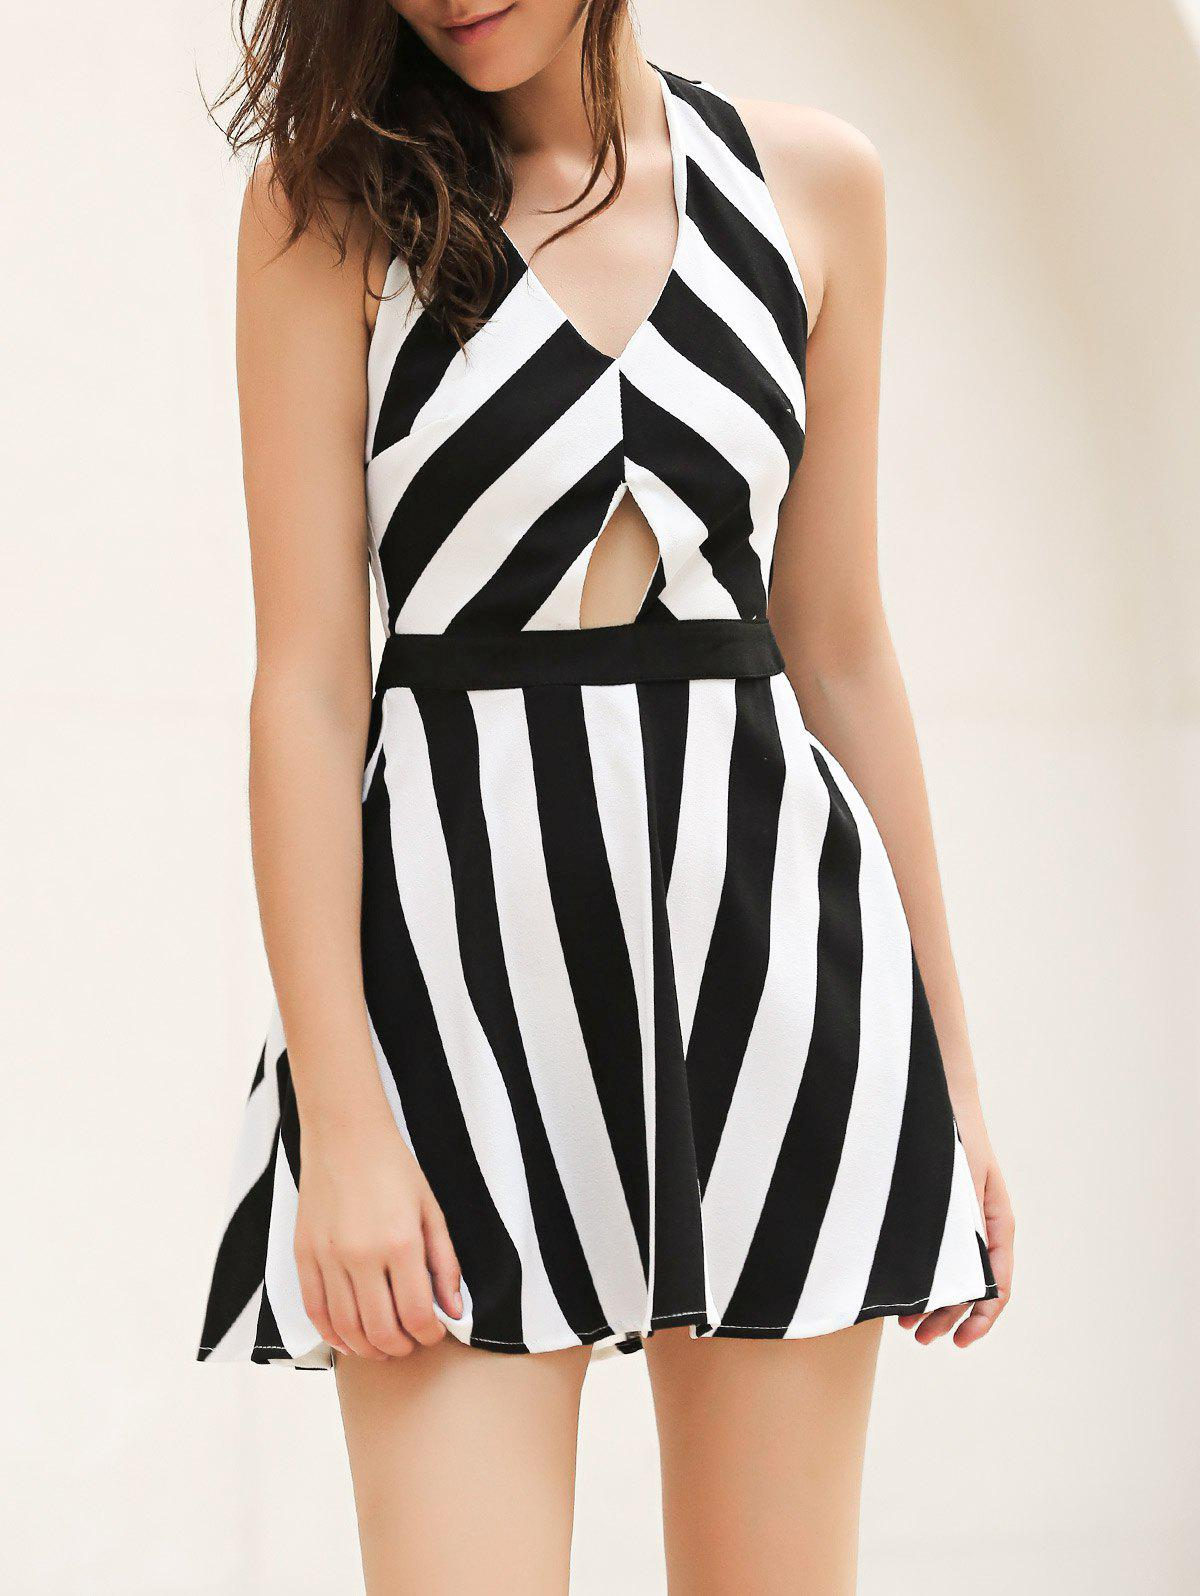 Vintage V Neck Striped Cut Out Mini Dress - WHITE/BLACK XL